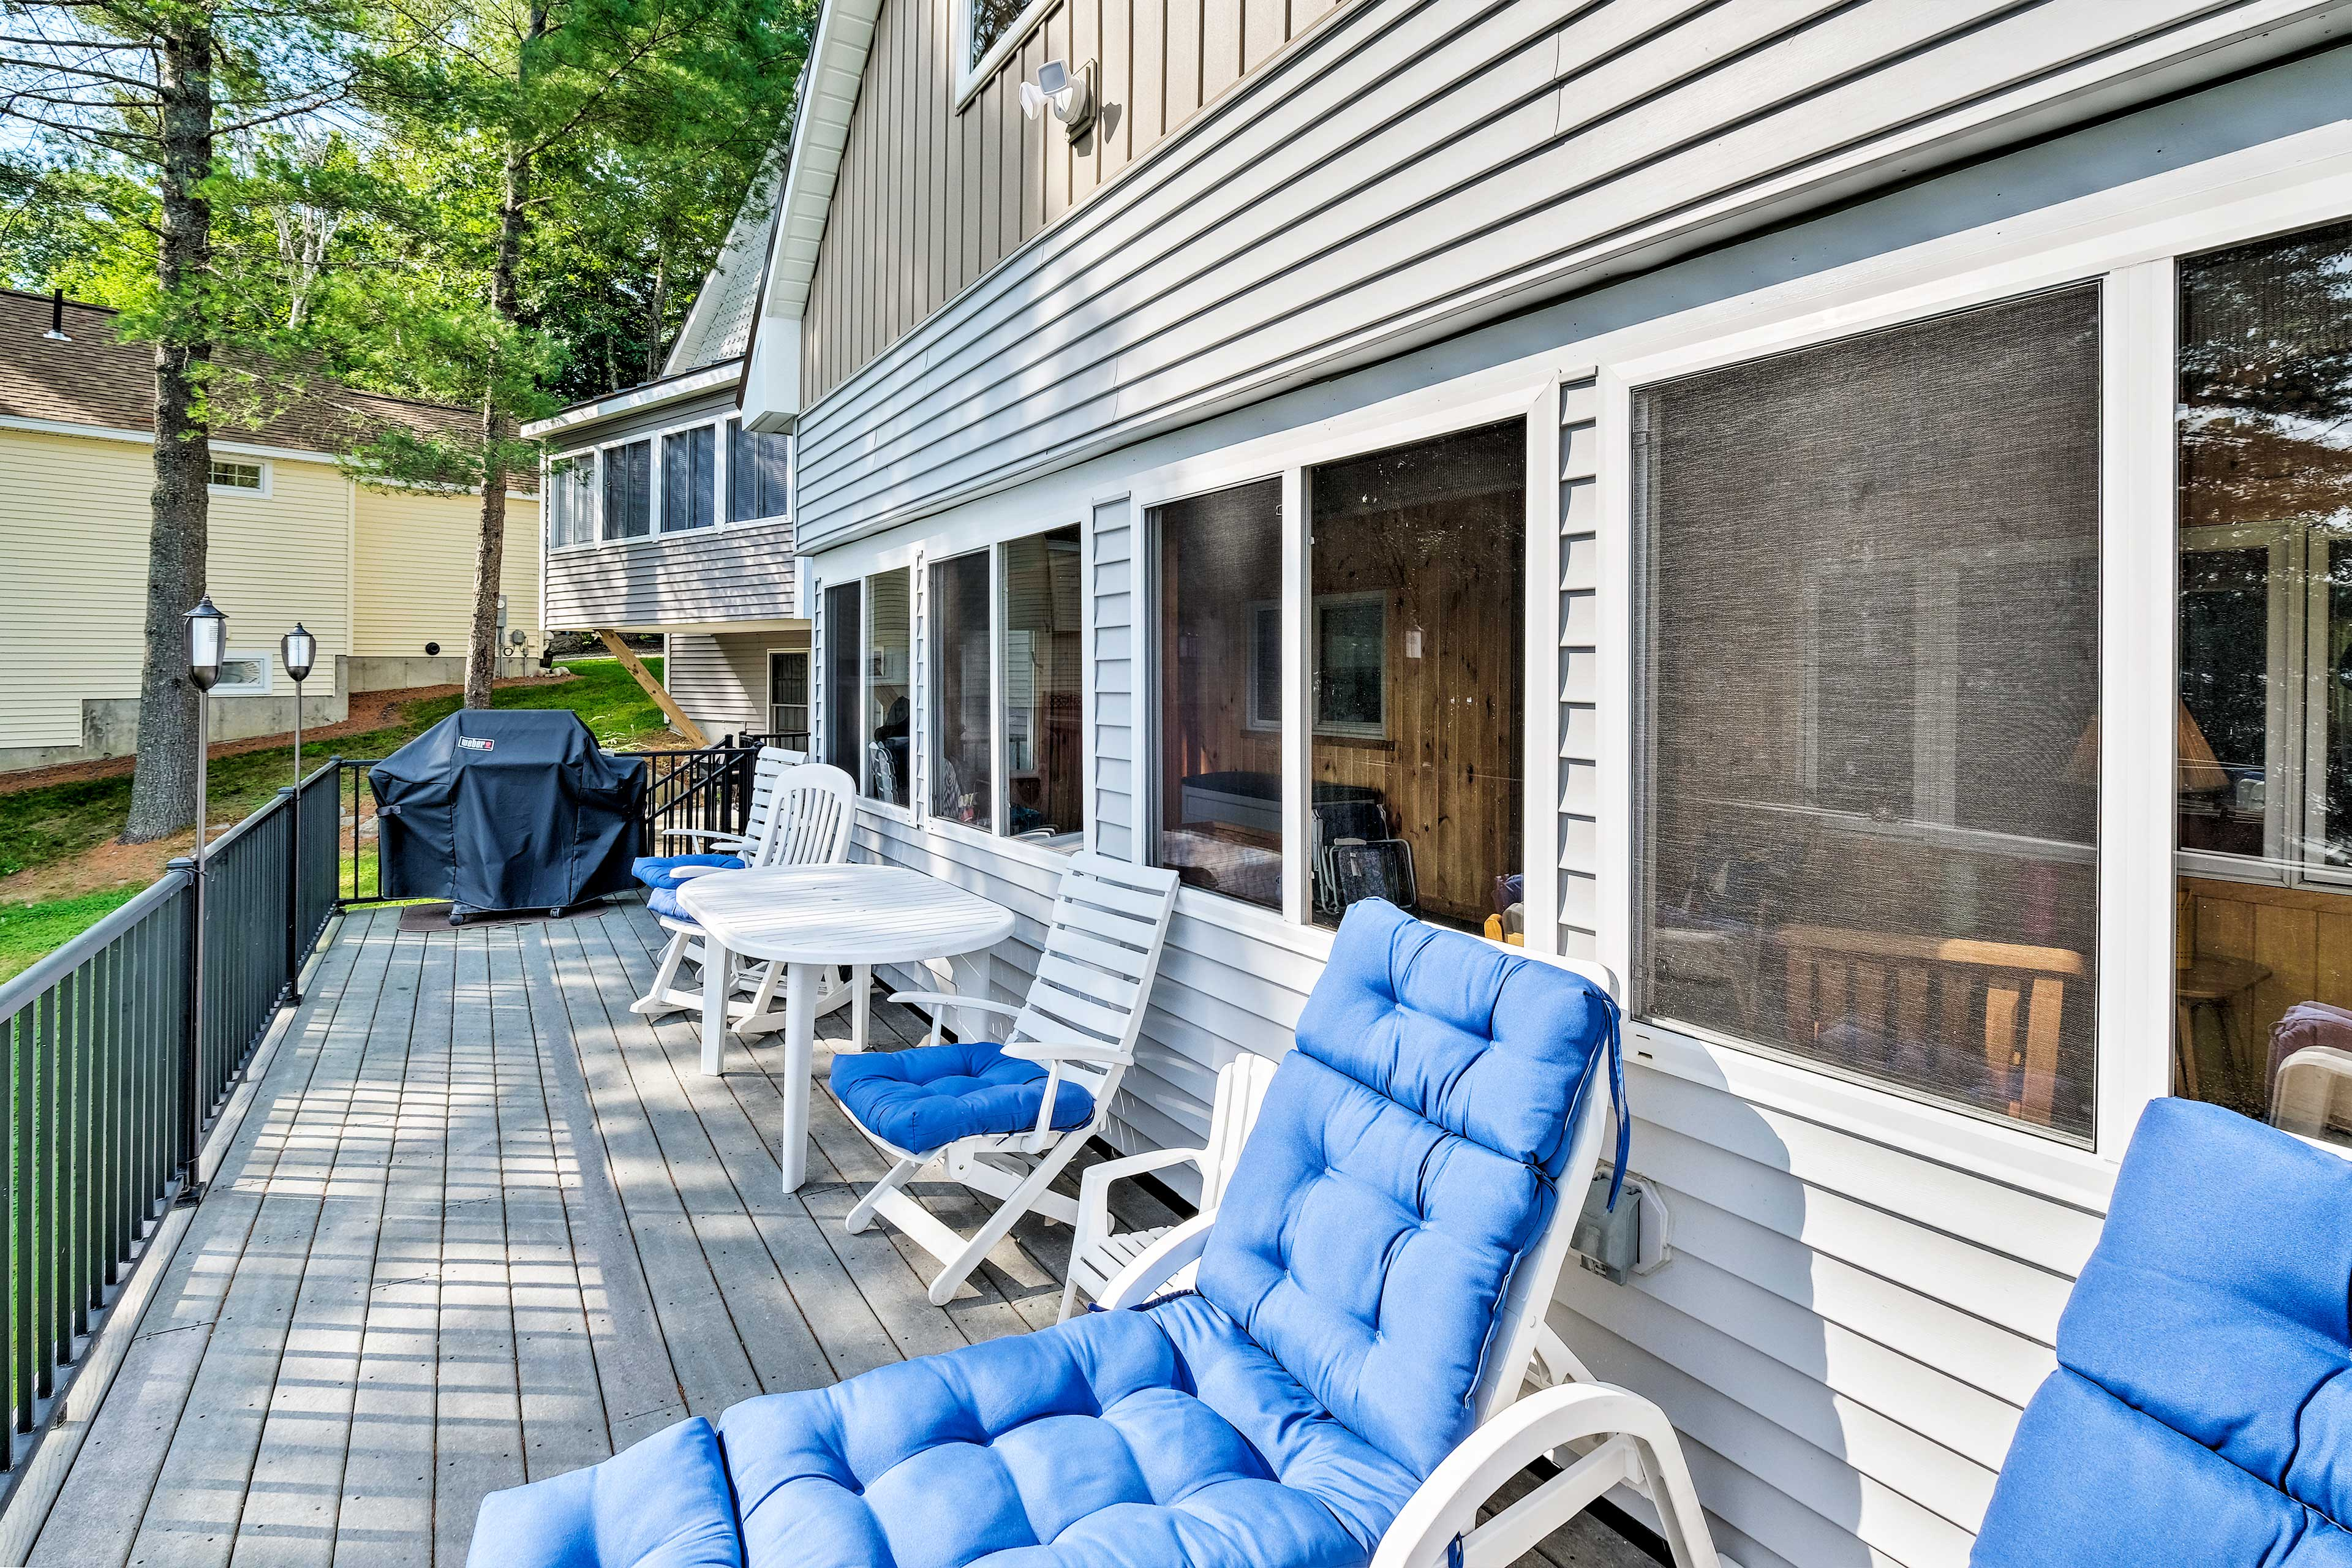 Get some fresh air out on the deck.